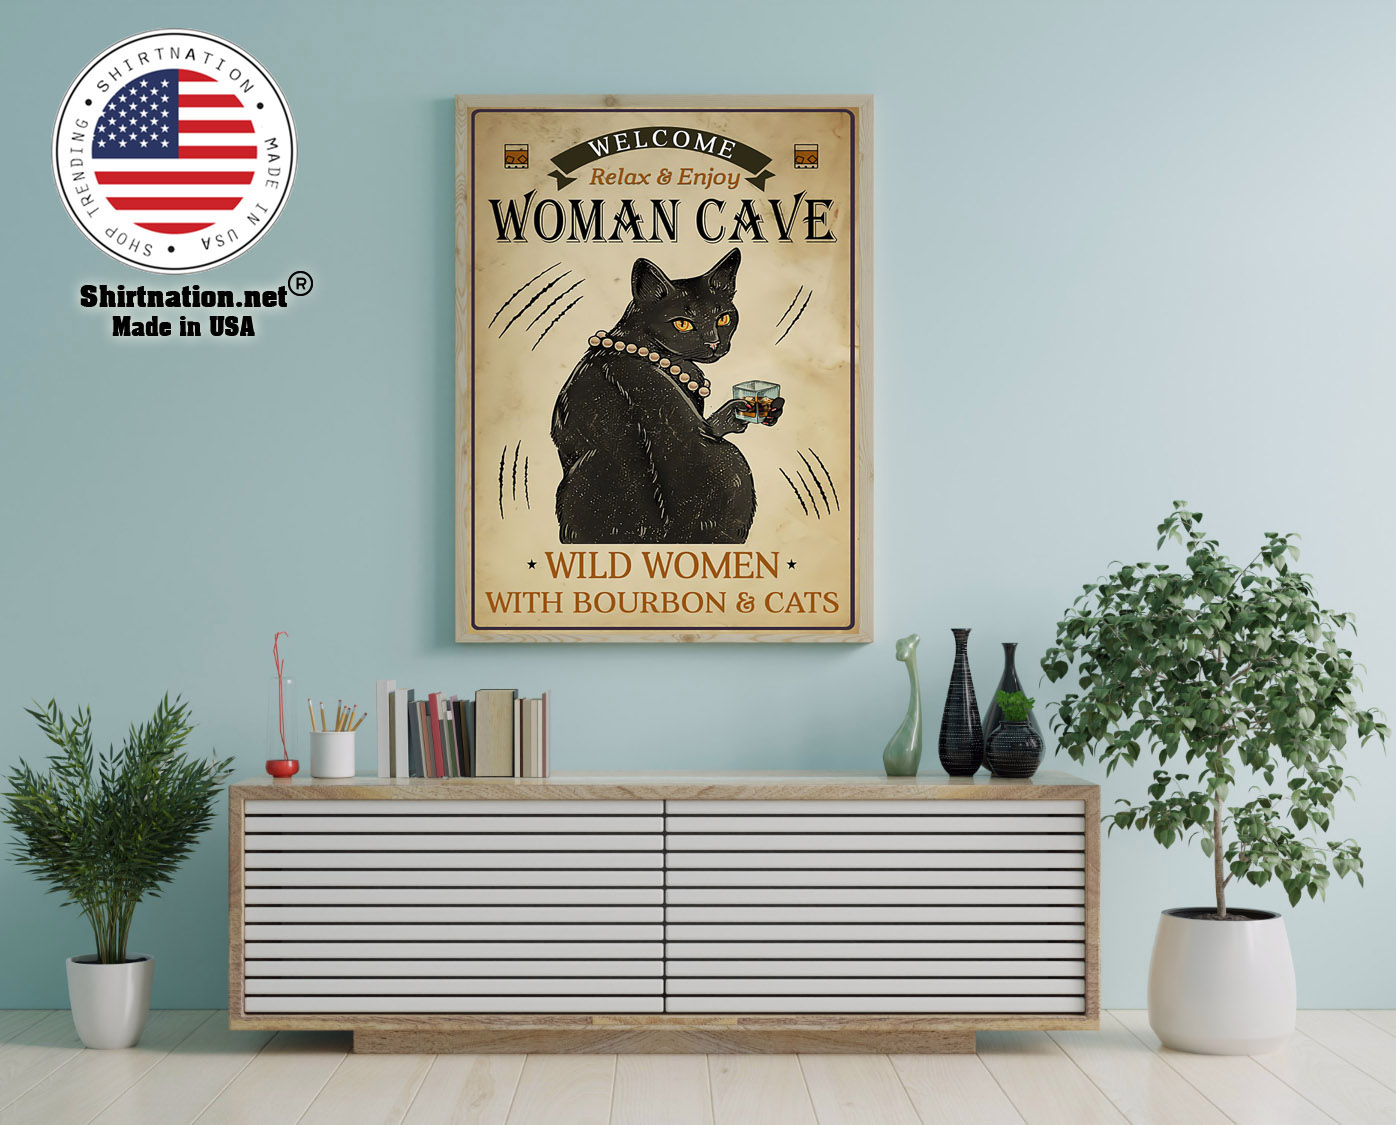 Welcome relax enjoy woman cave will women with bourbon and cats poster 12